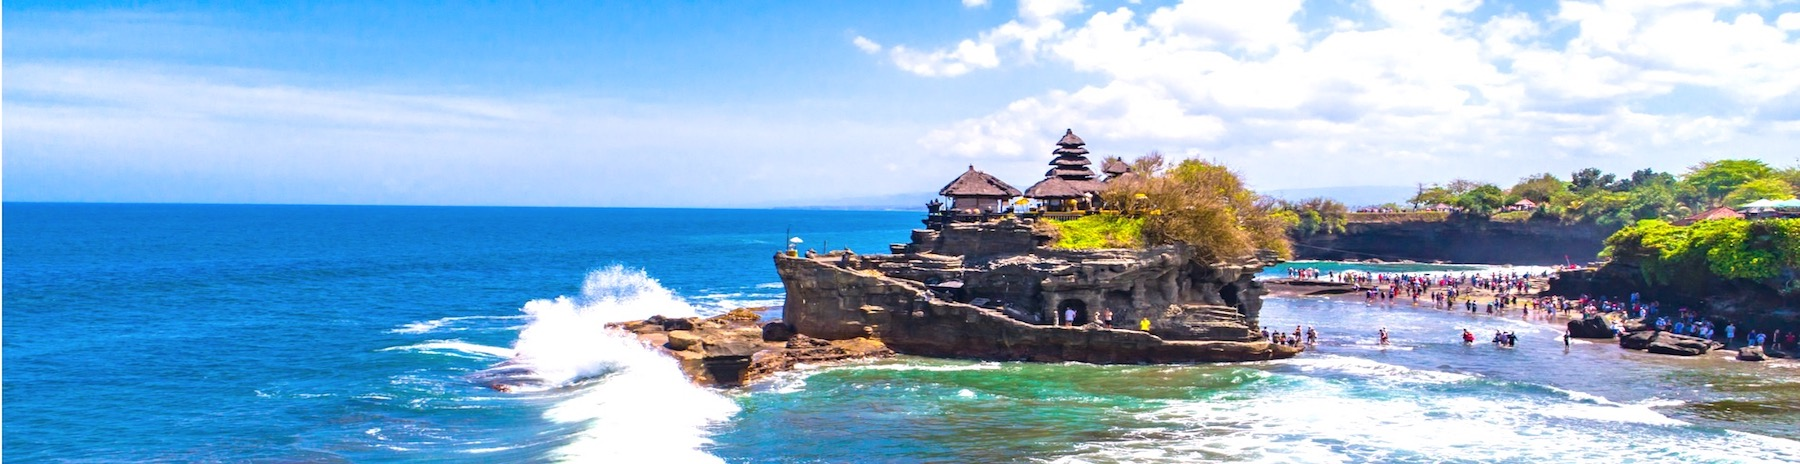 9 Nights Triple Far East Break with Bali Beaches